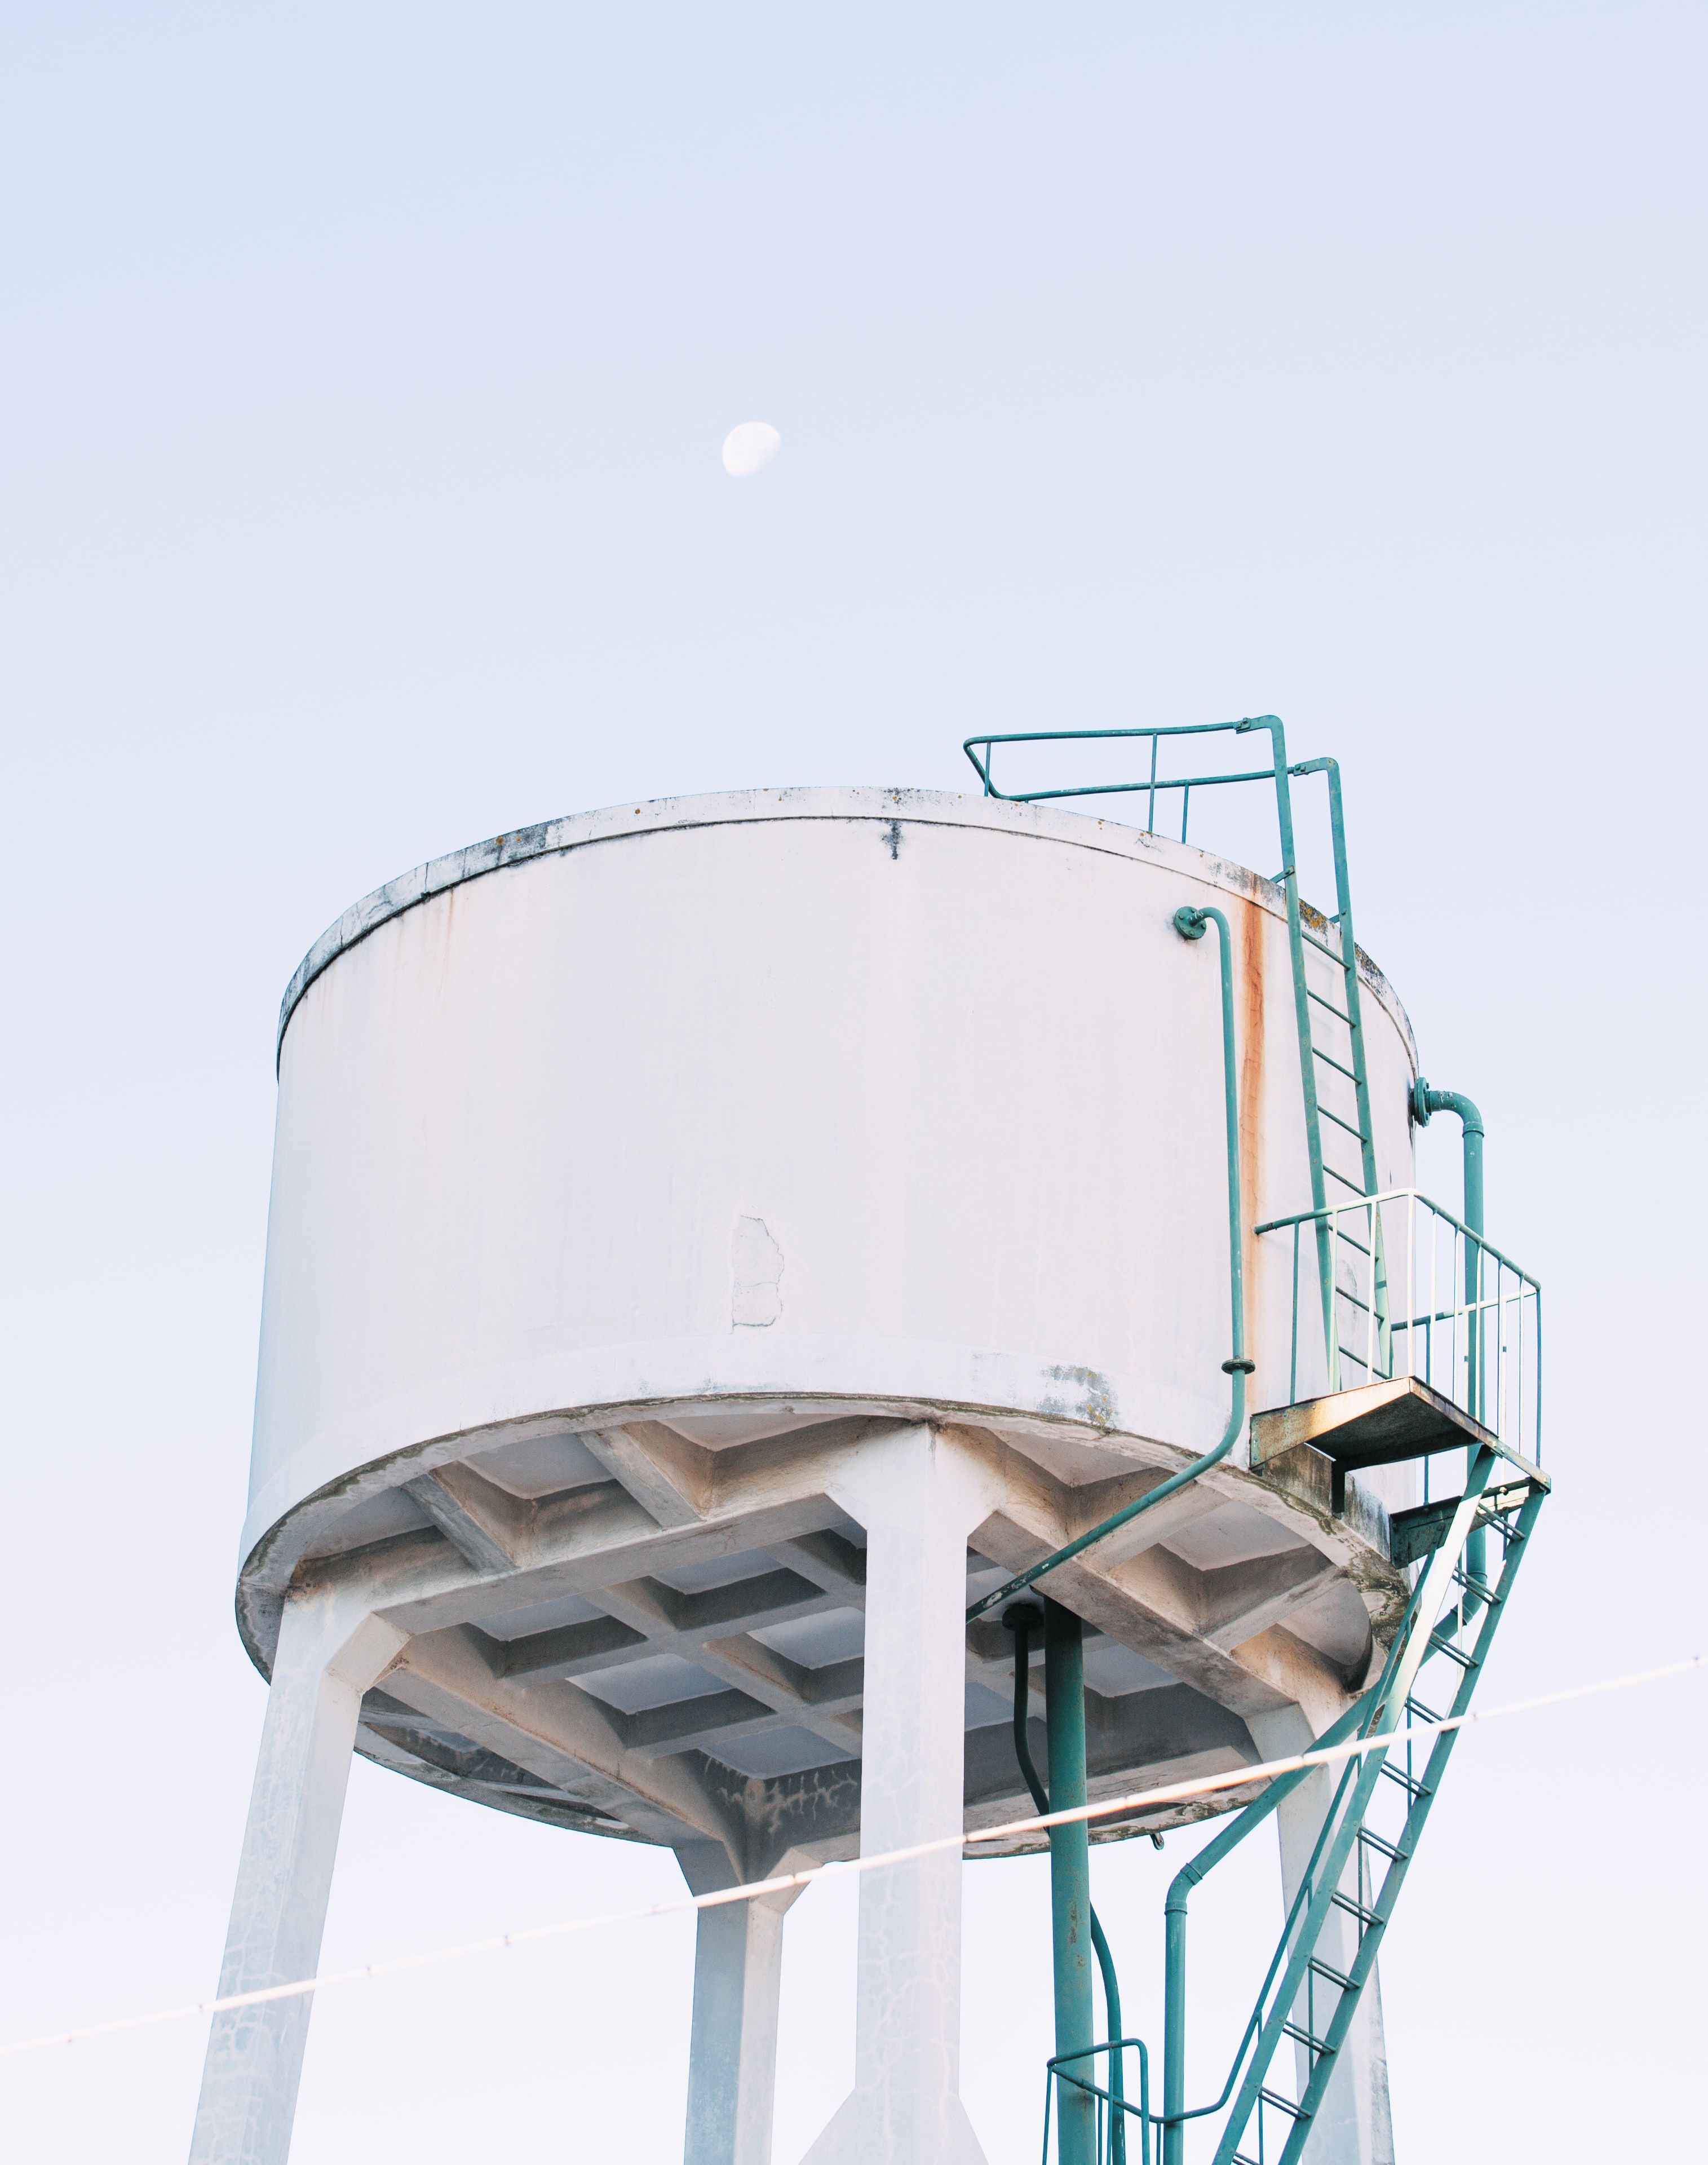 large round white concrete fluid tank with green metal ladder